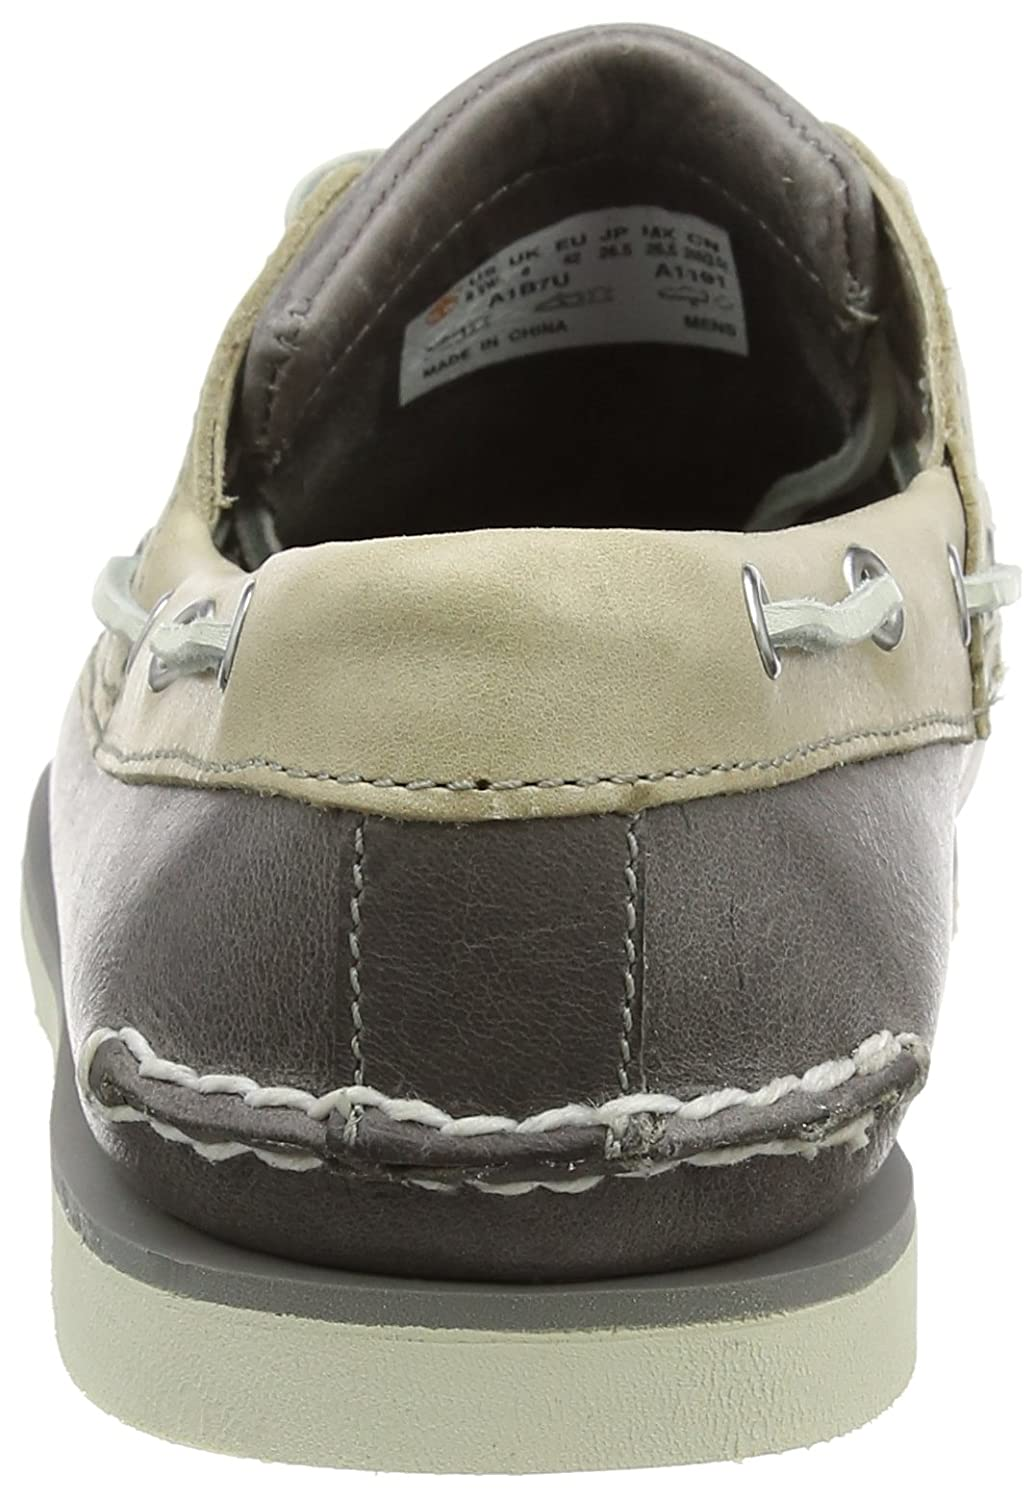 Shoes & Bags Timberland Mens Classic Boat 2 Eyerubber Chaos